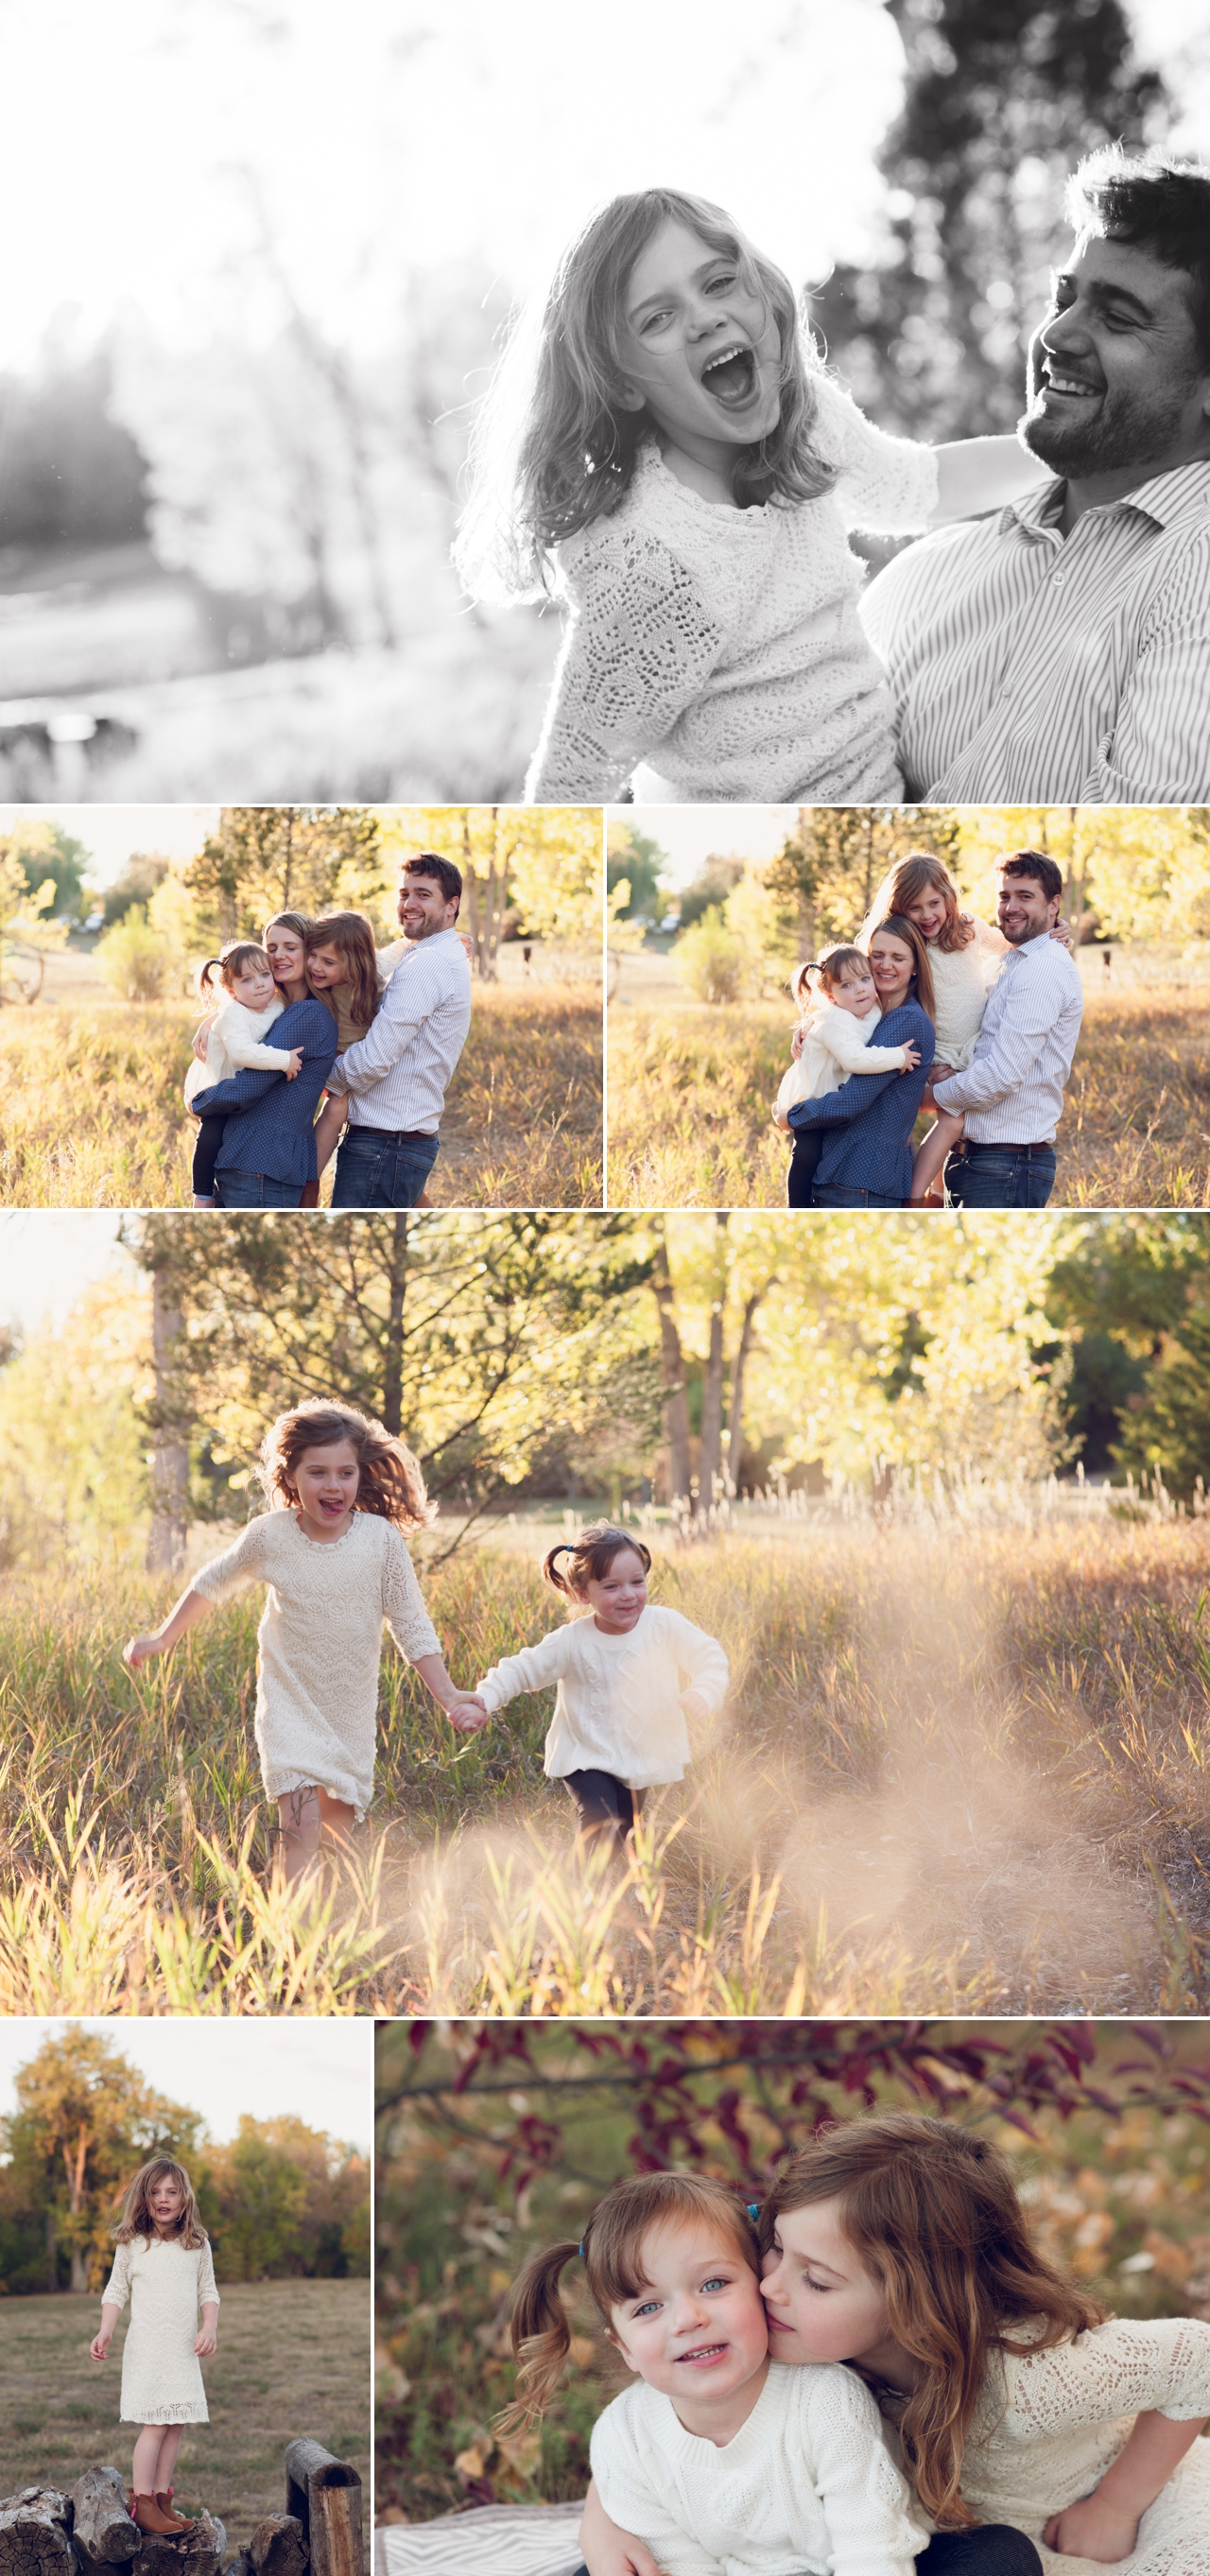 R Family Denver photographer for families 3.jpg